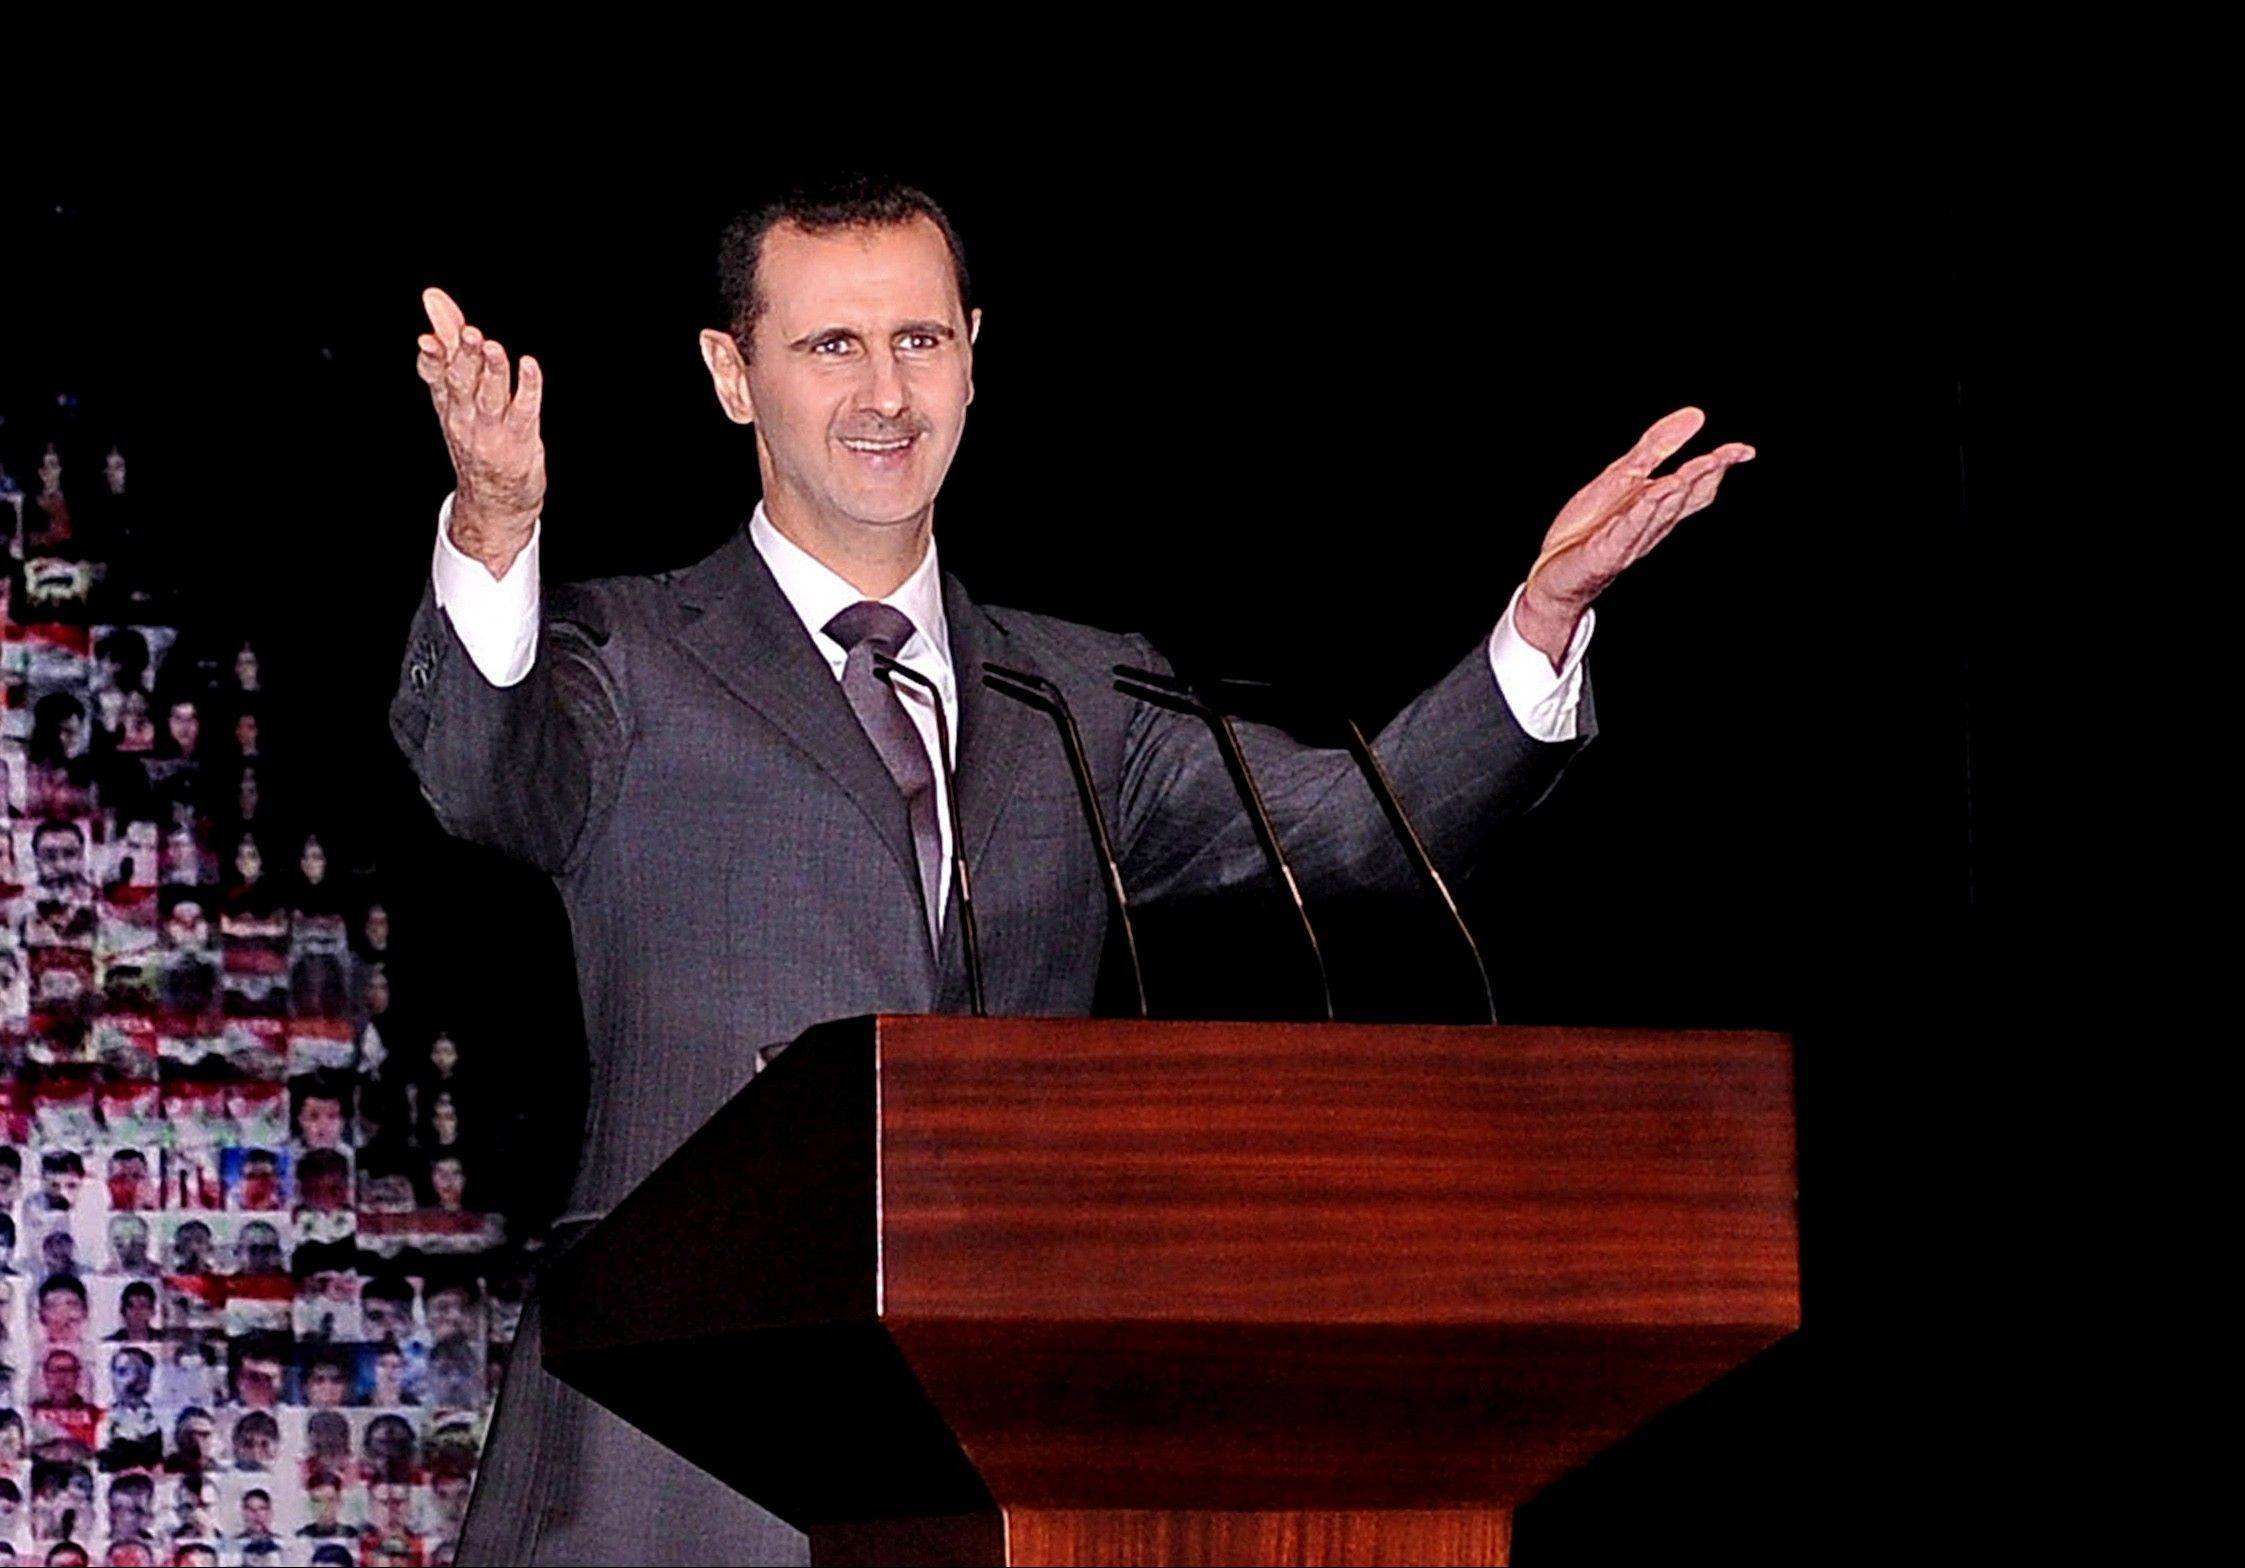 Associated Press/Jan. 6, 2013Syrian President Bashar Assad speaks at the Opera House in central Damascus, Syria.